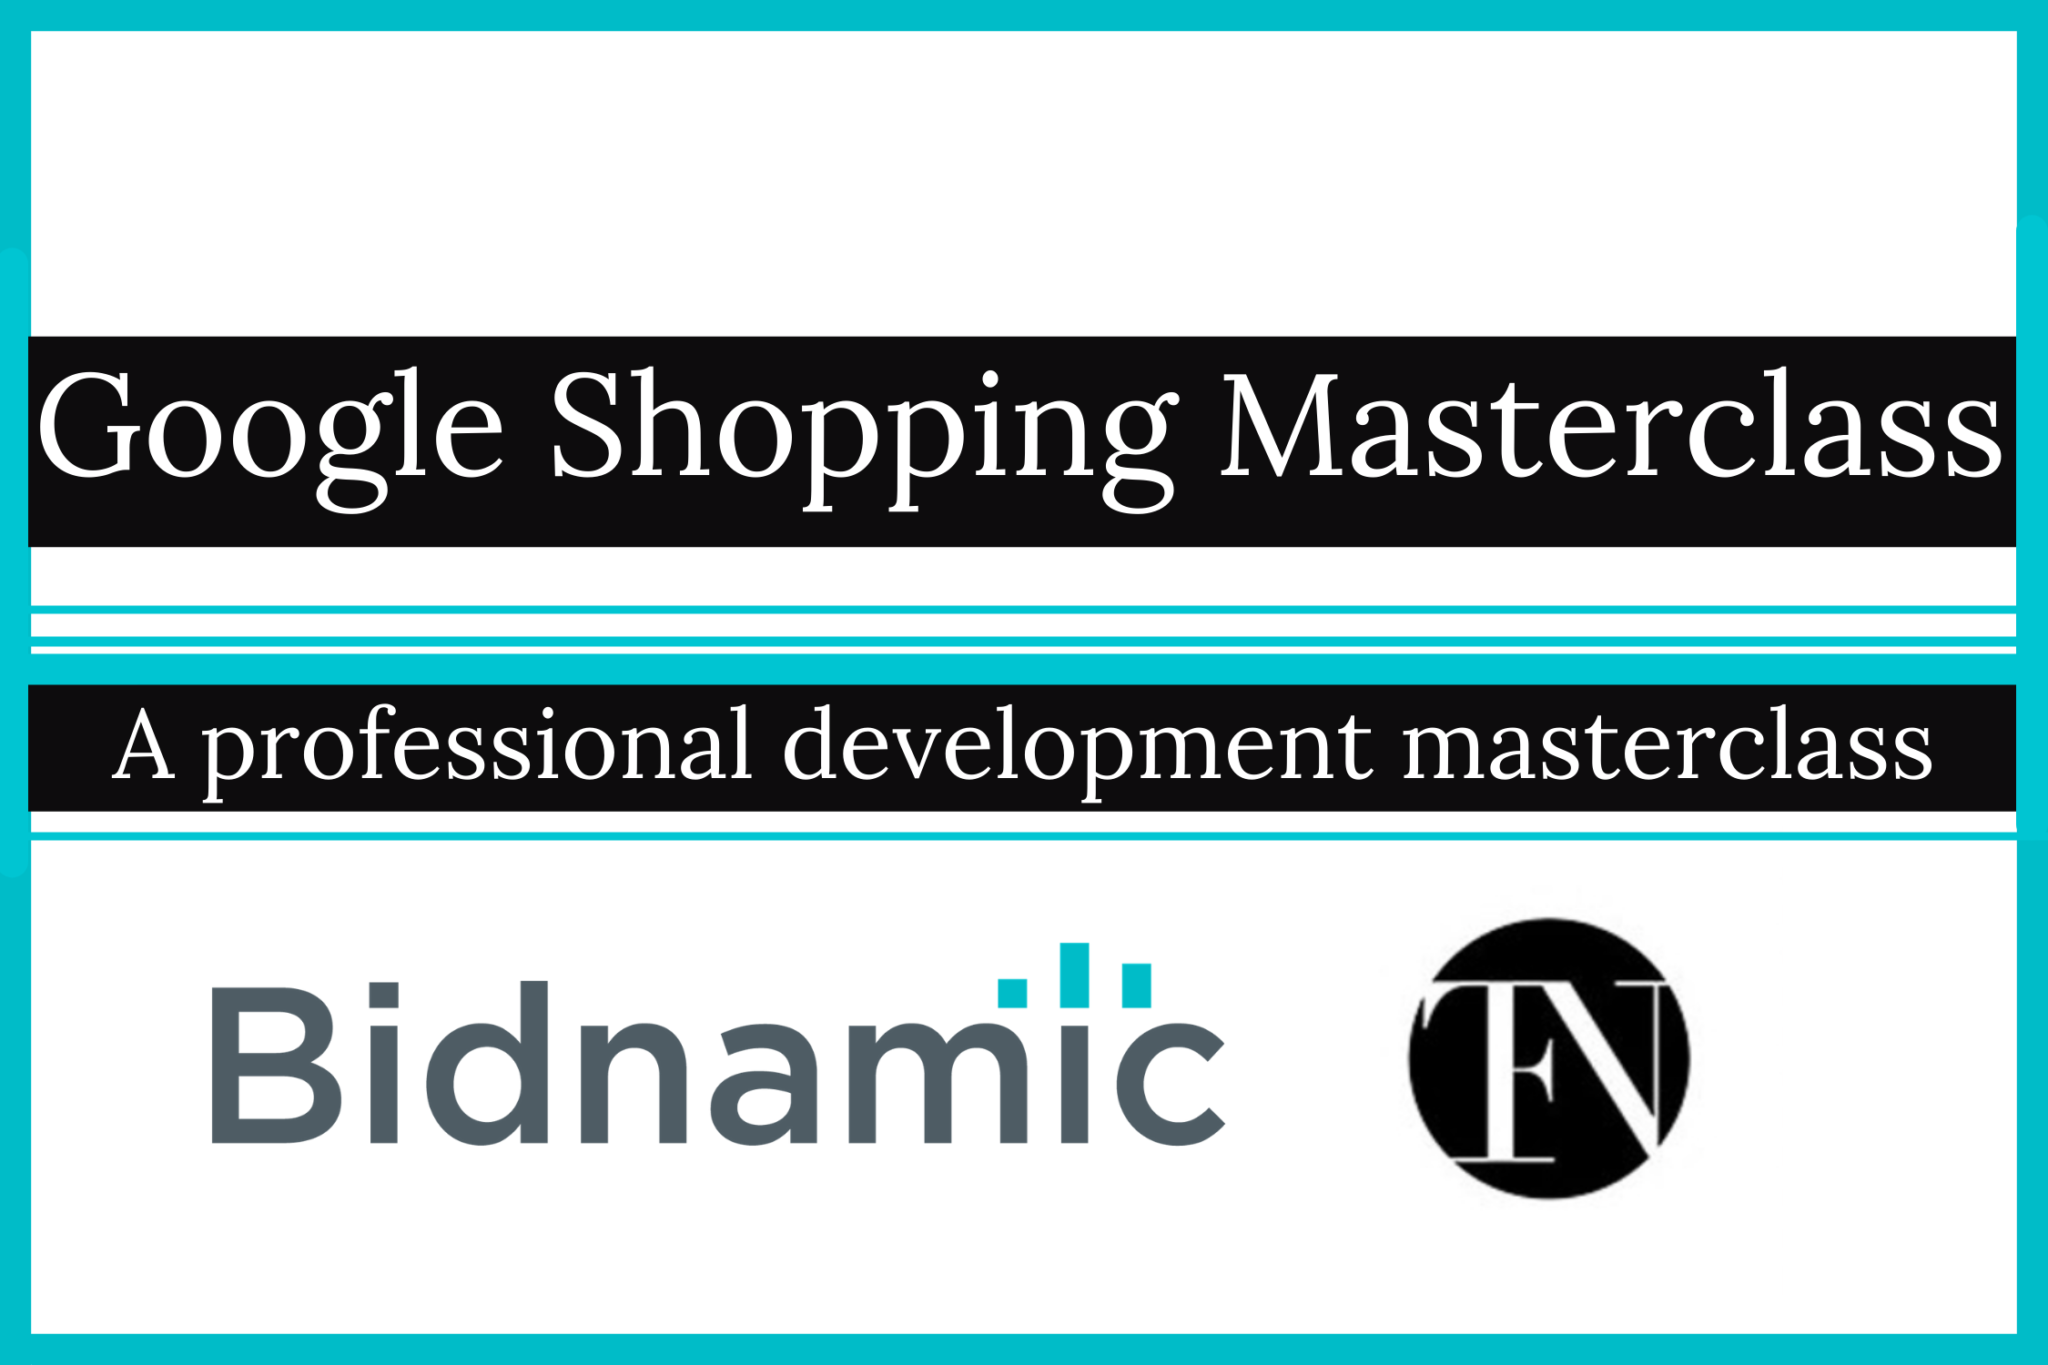 The Google Shopping Masterclass – in partnership with The Fashion Network